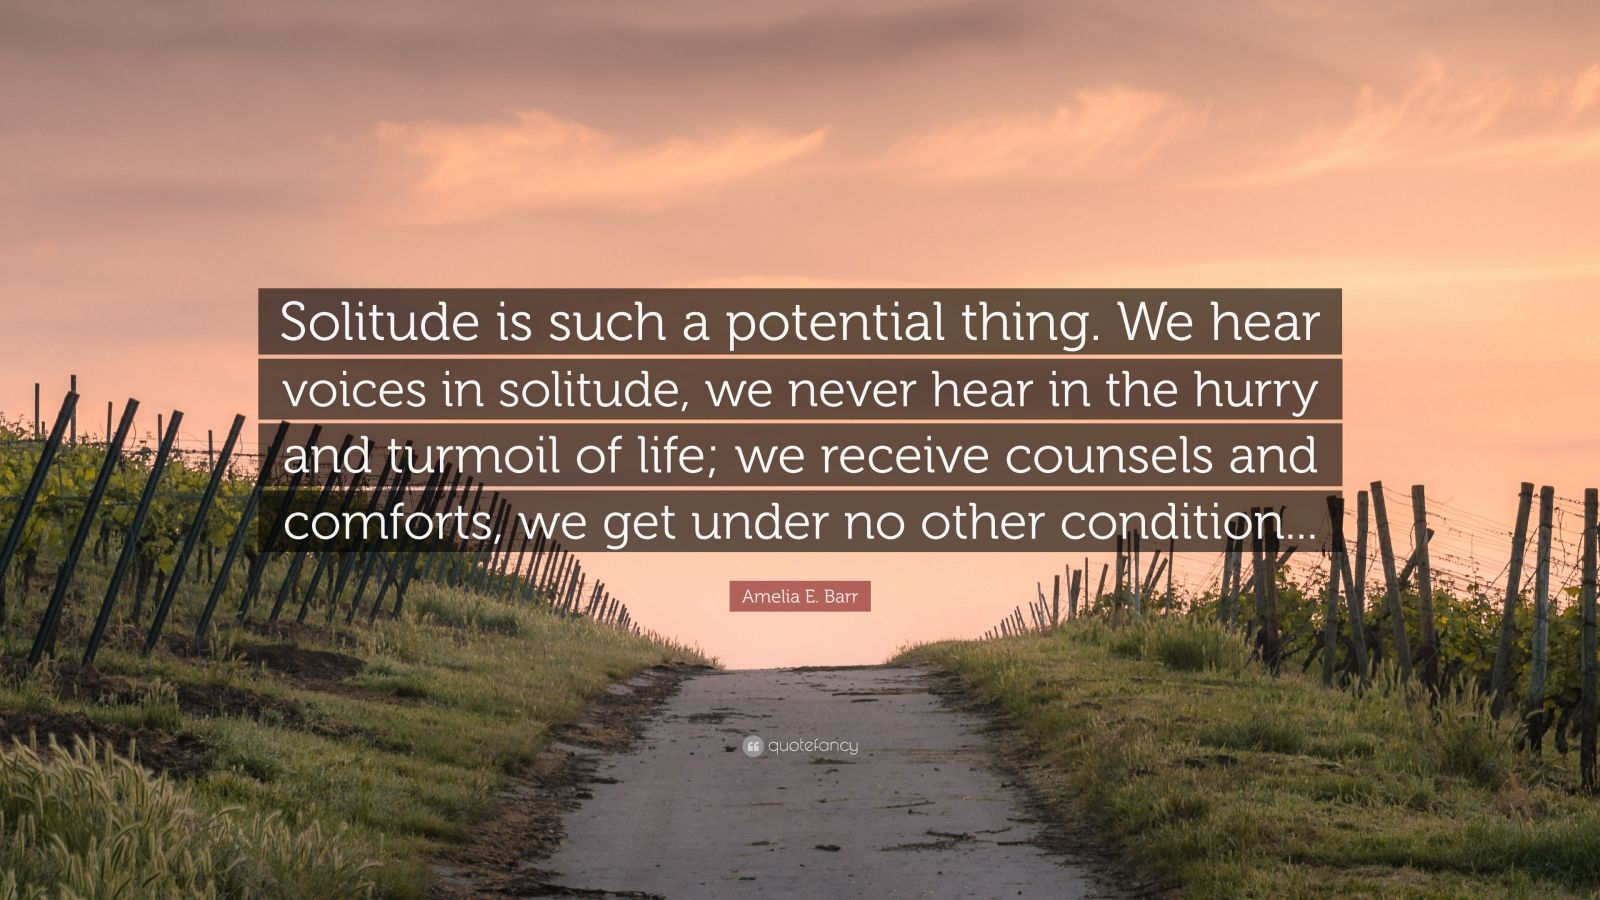 """Amelia E. Barr Quote: """"Solitude is such a potential thing. We hear voices in solitude, we never hear in the hurry and turmoil of life; we receive counsels and comforts, we get under no other condition..."""""""